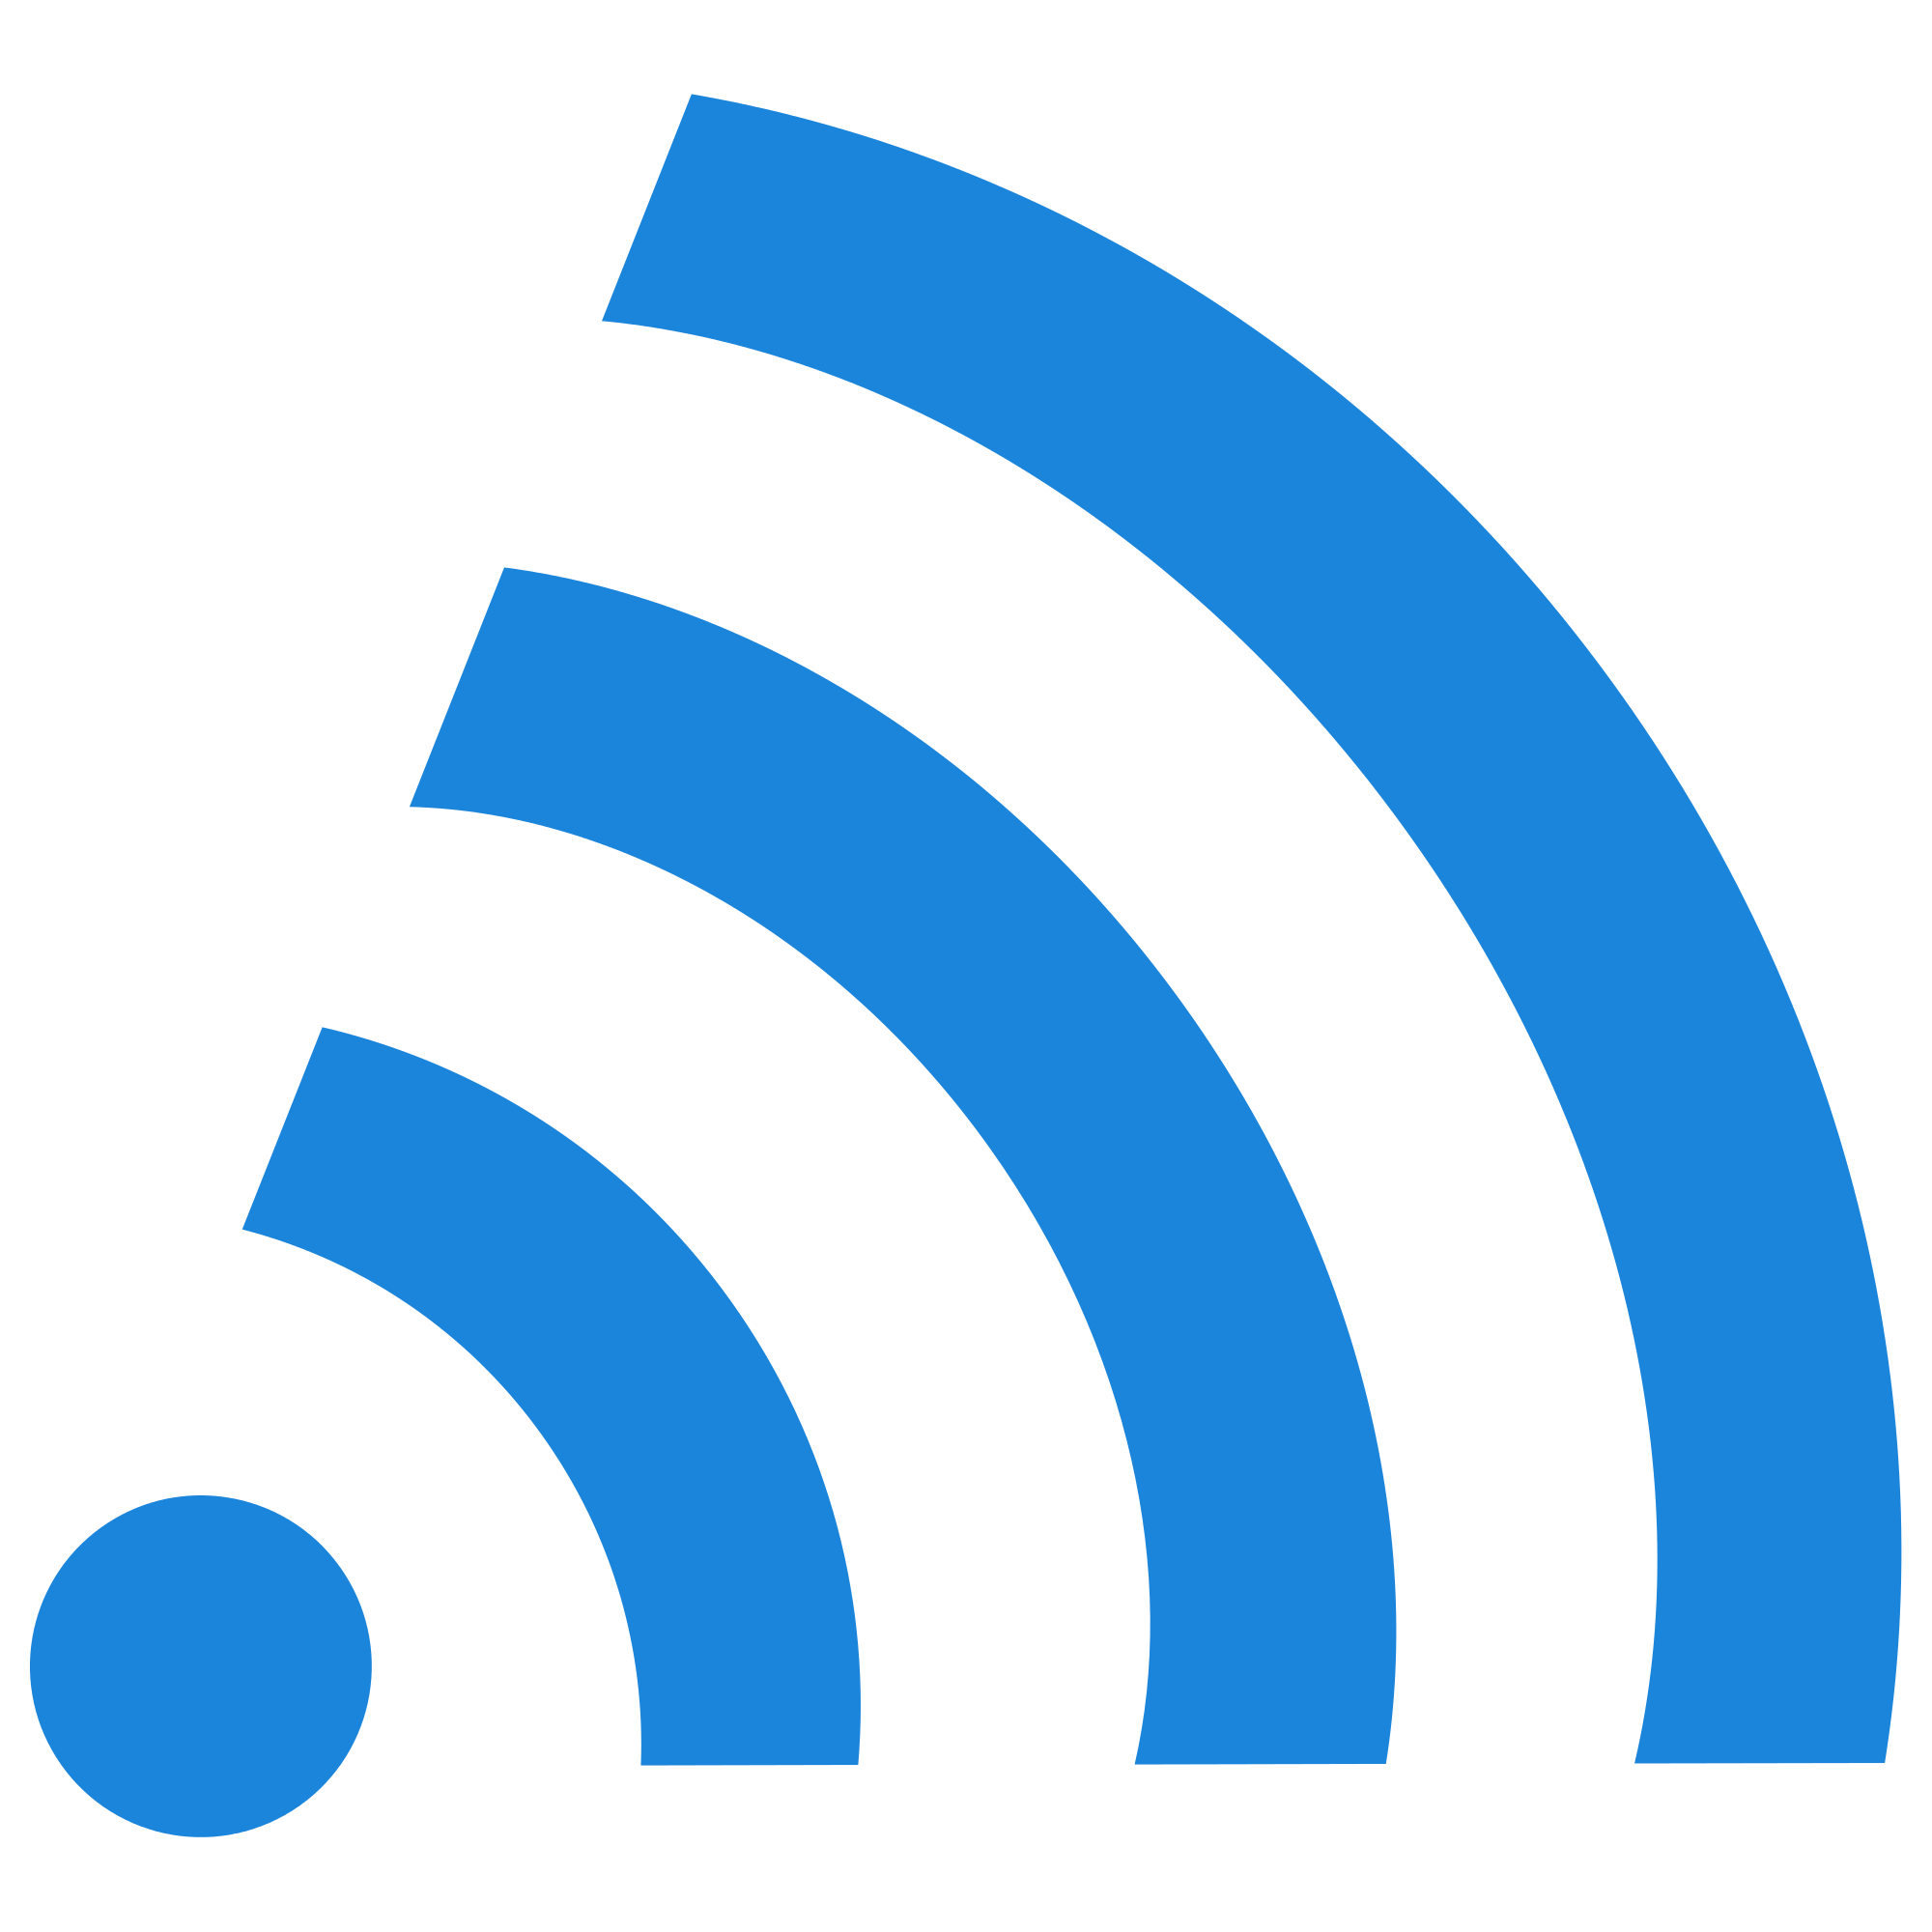 wifi bars png